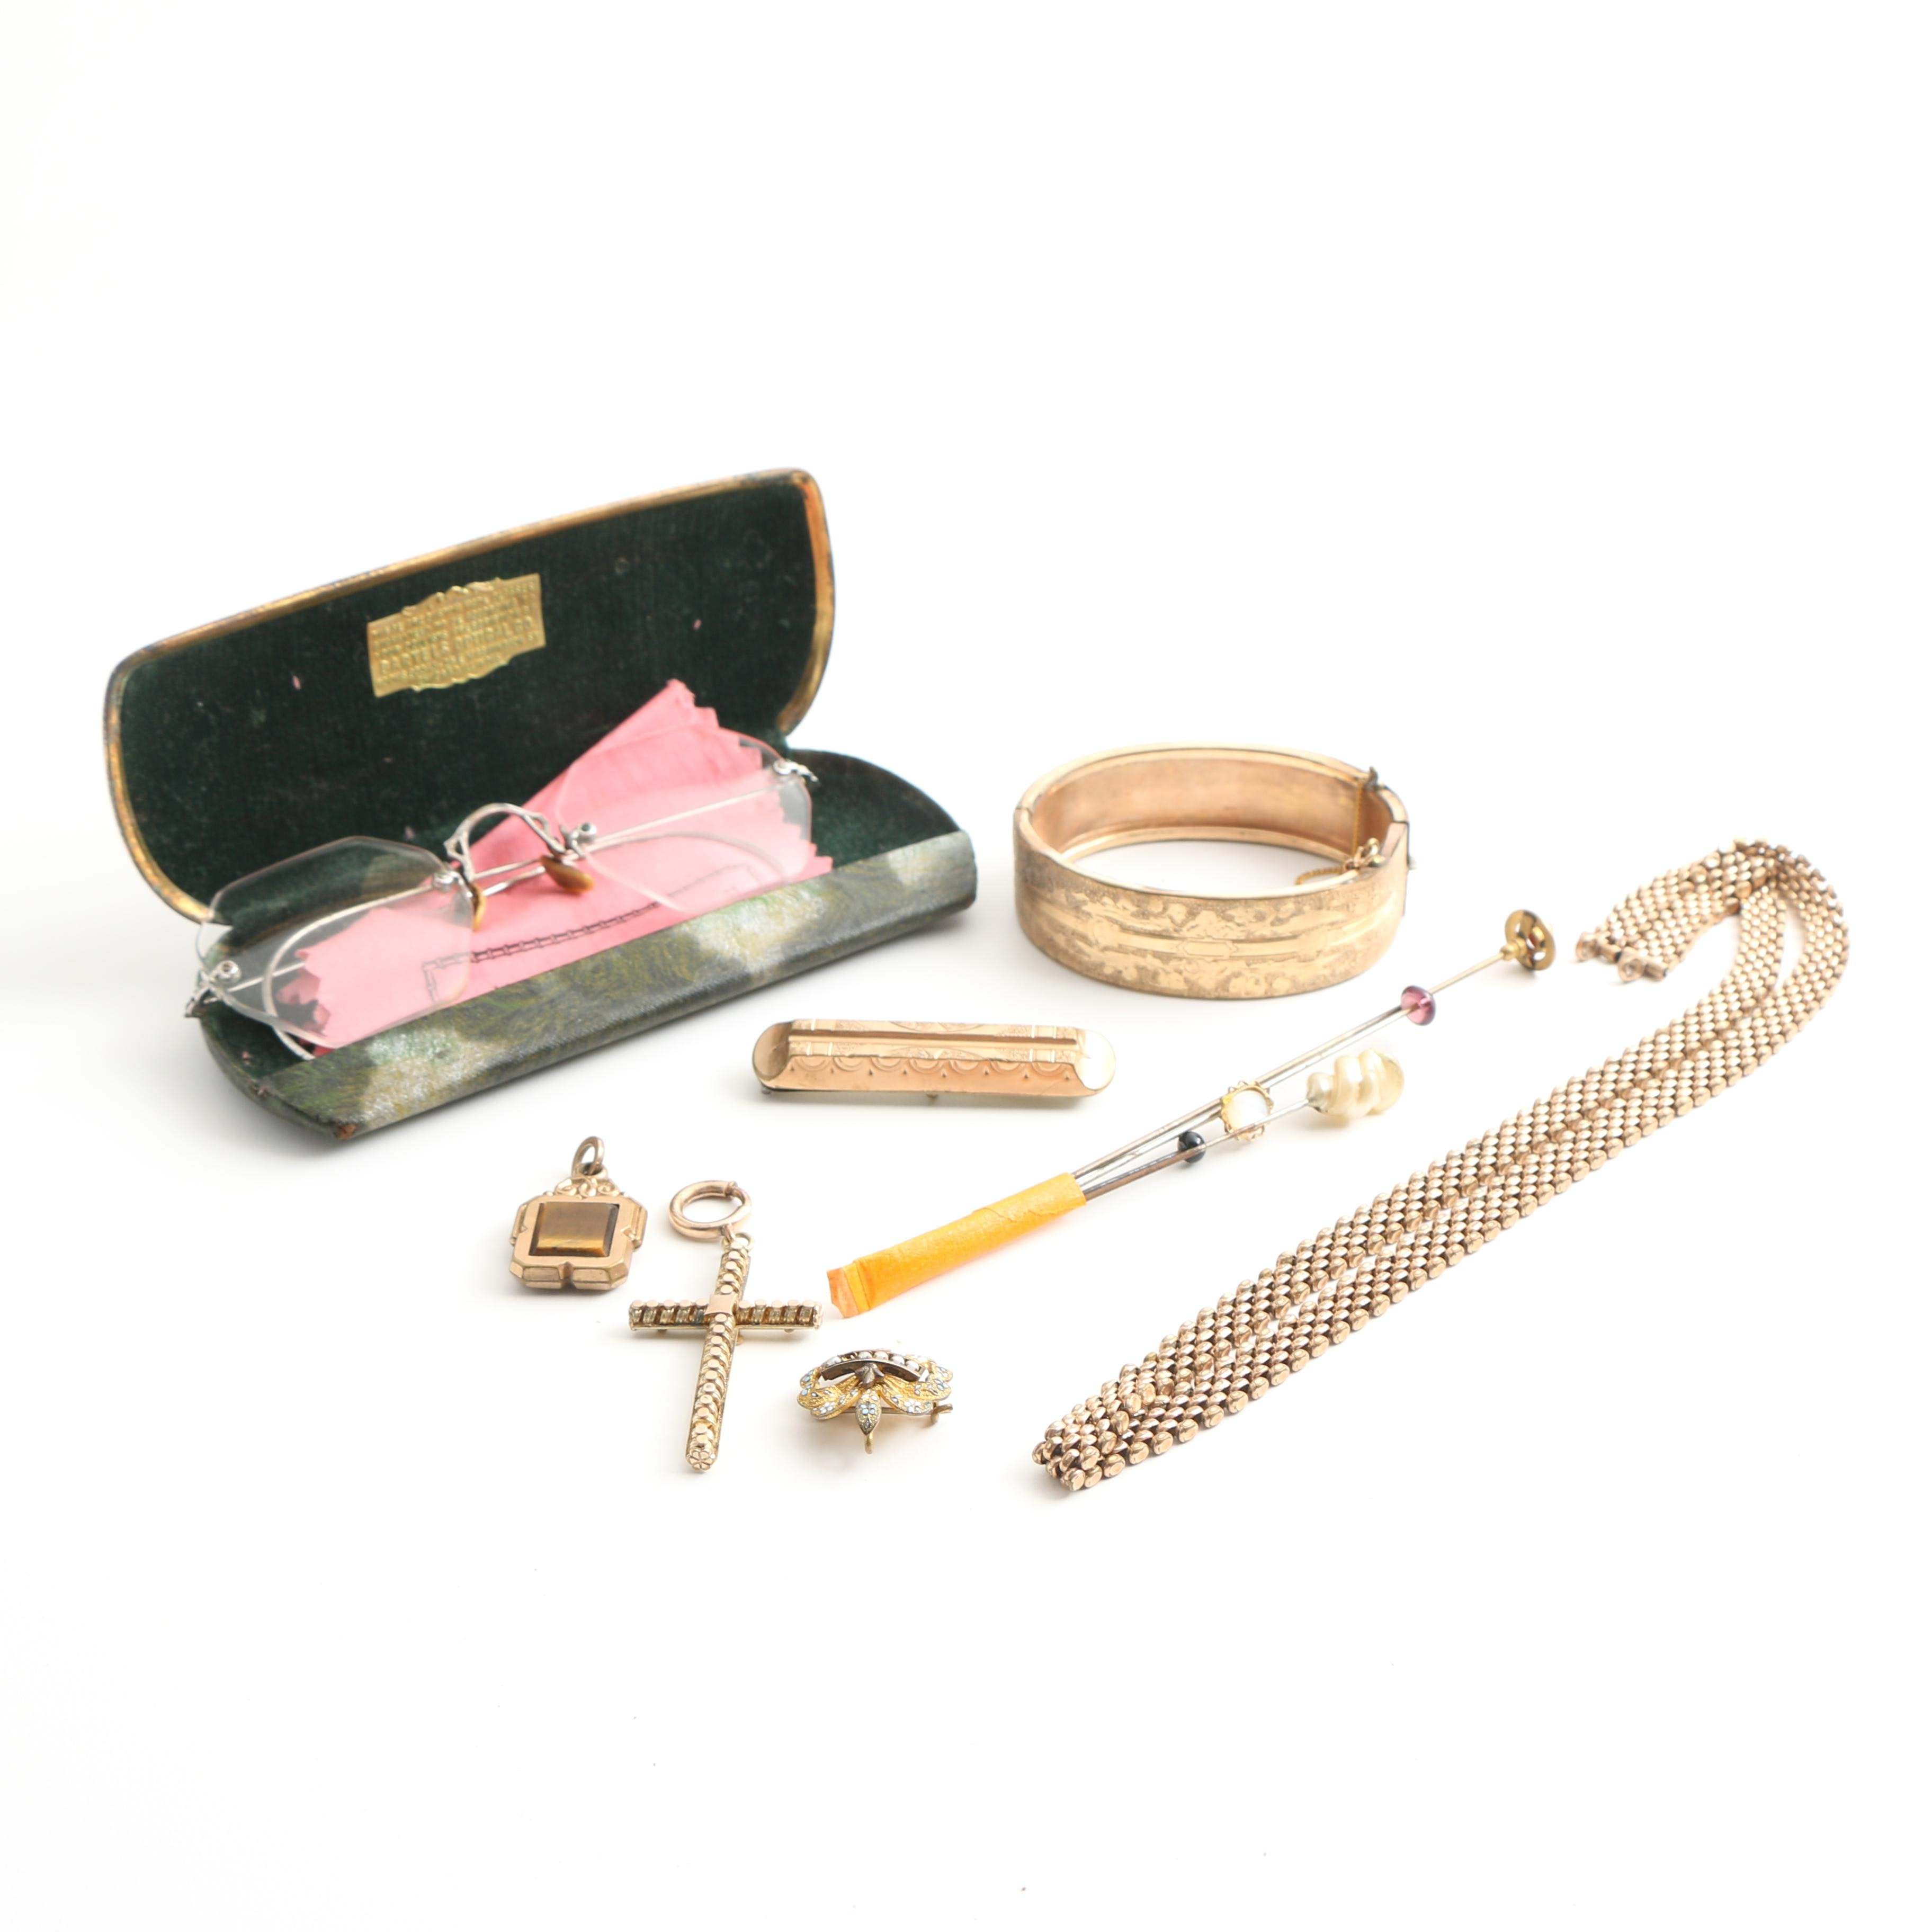 Assortment of Vintage Costume Jewelry and Accessories